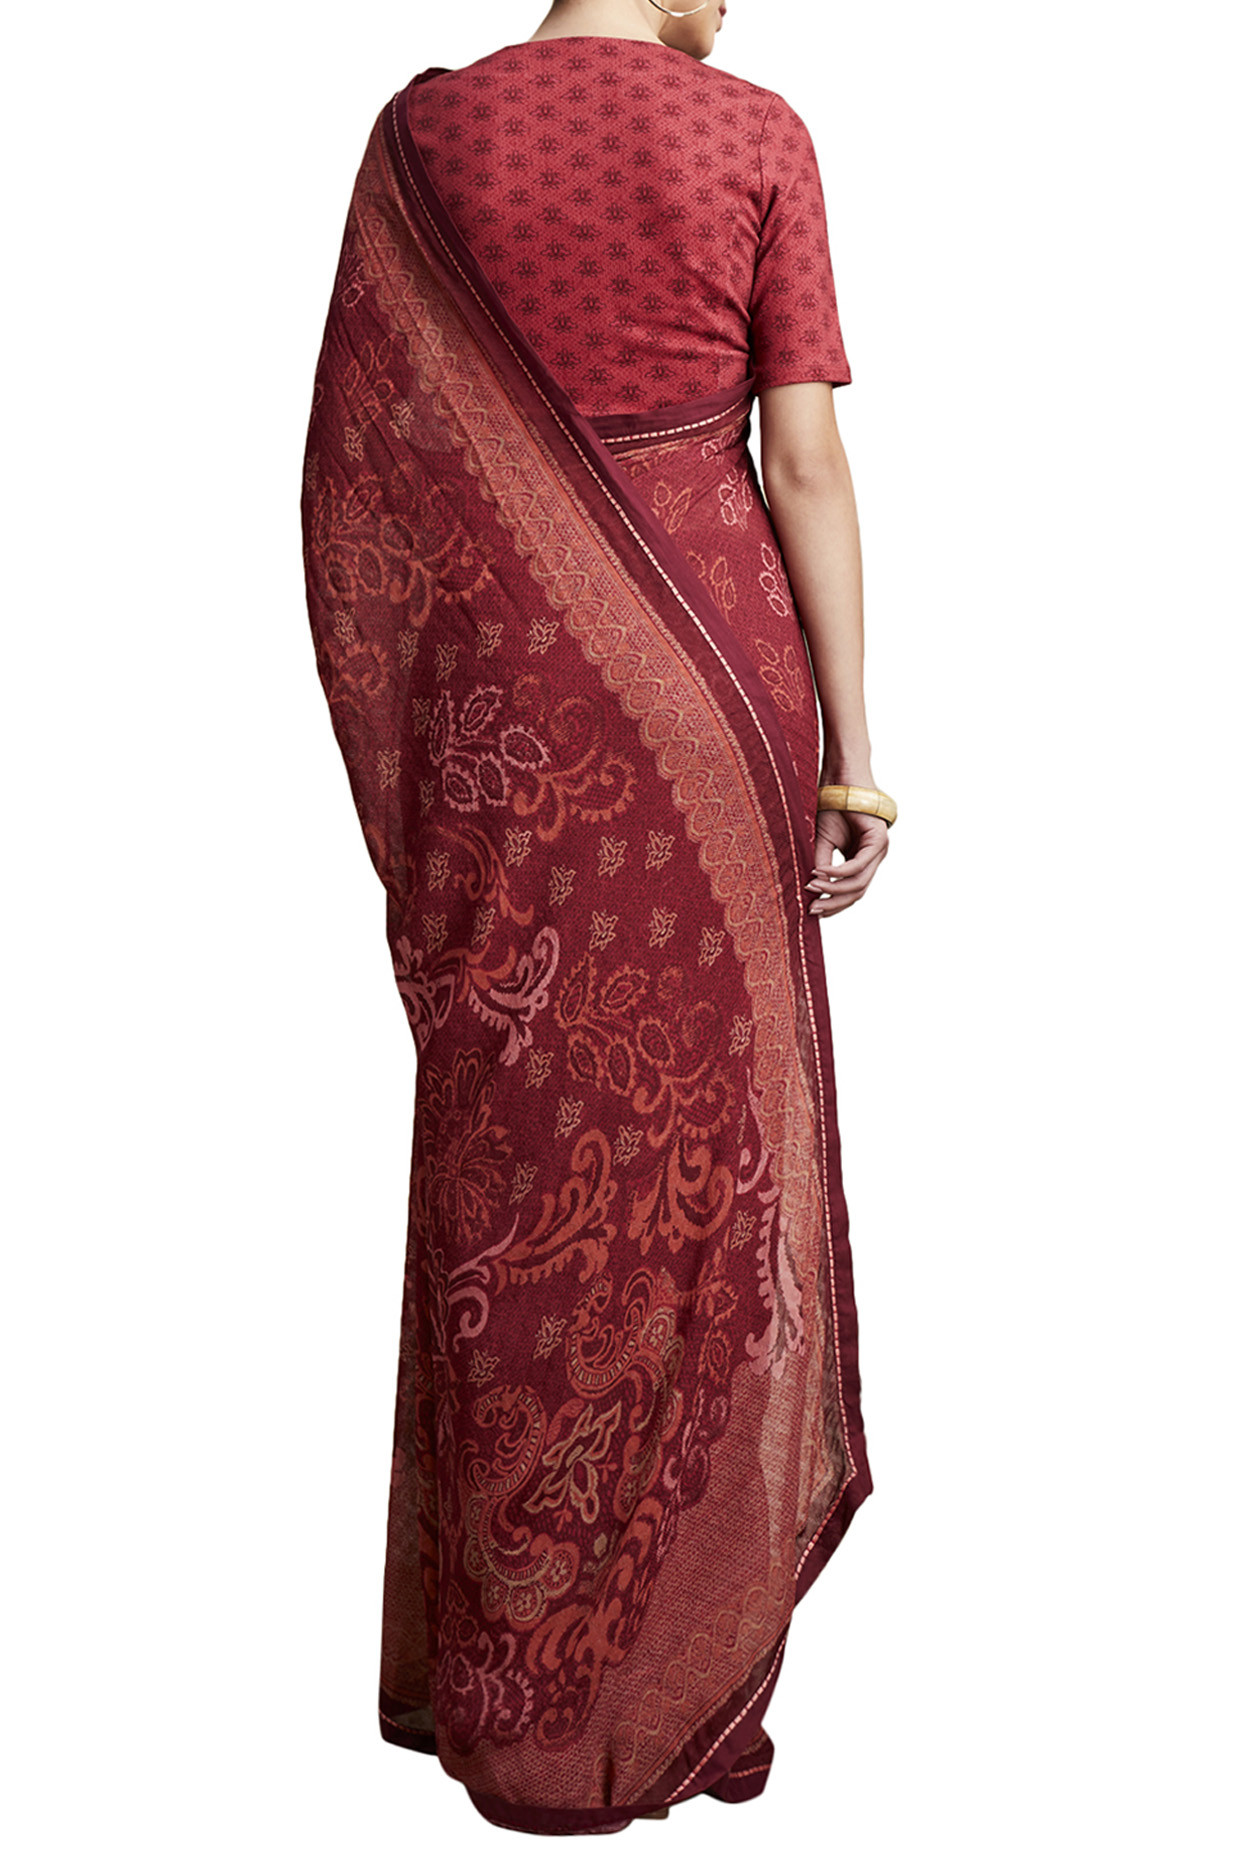 Red Printed Floral Saree by Ritu Kumar